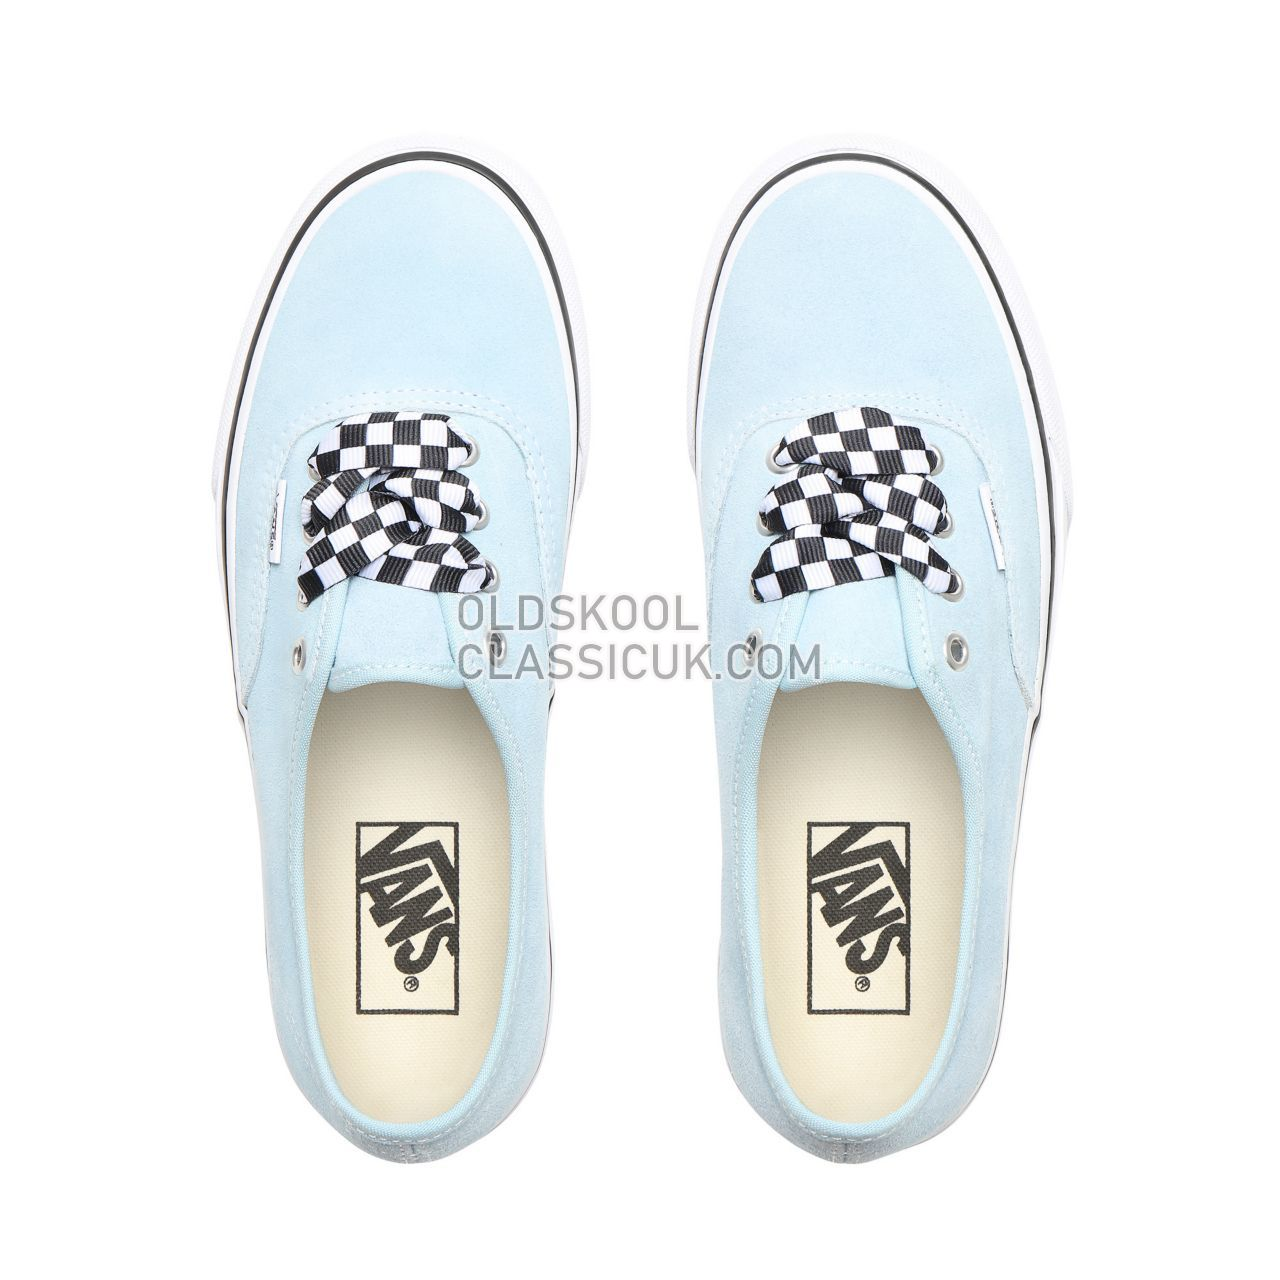 Vans Checkerboard Lace Authentic Platform 2.0 Sneakers Womens (Checkerboard Lace) Cool Blue/True White VN0A3AV8S1X Shoes